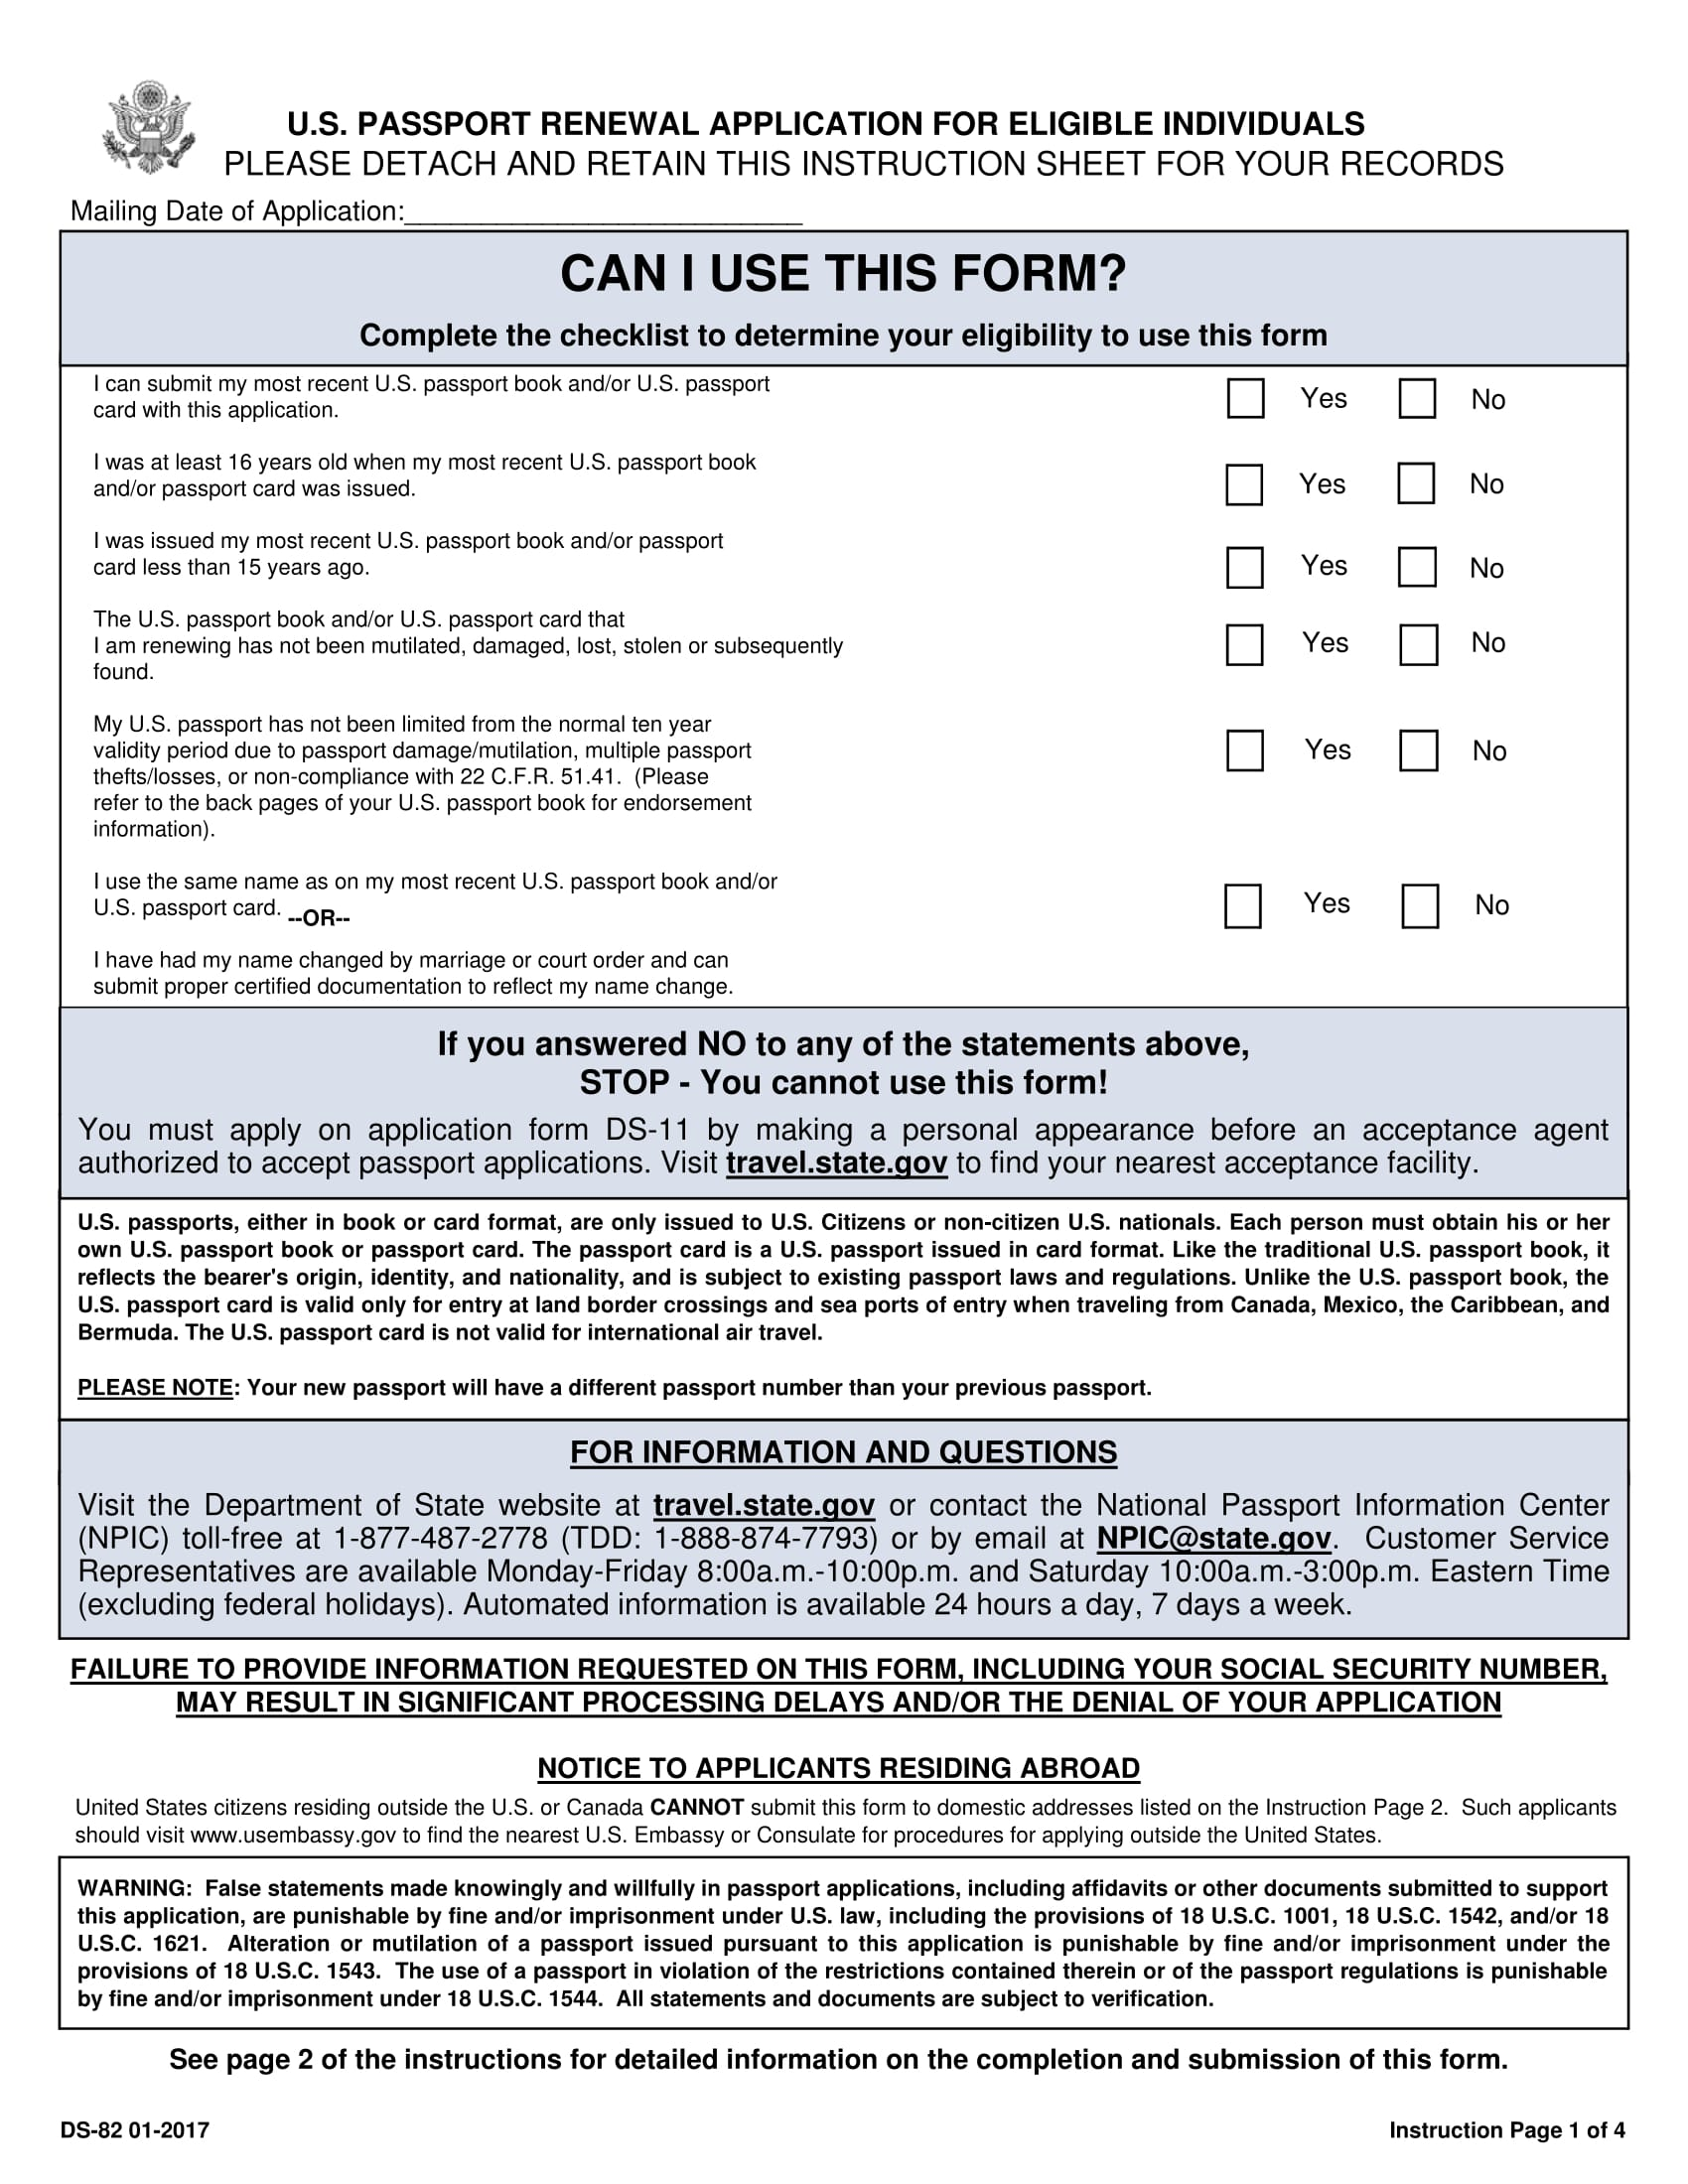 Free us passport renewal application for eligible individuals us passport renewal application for eligible individuals falaconquin